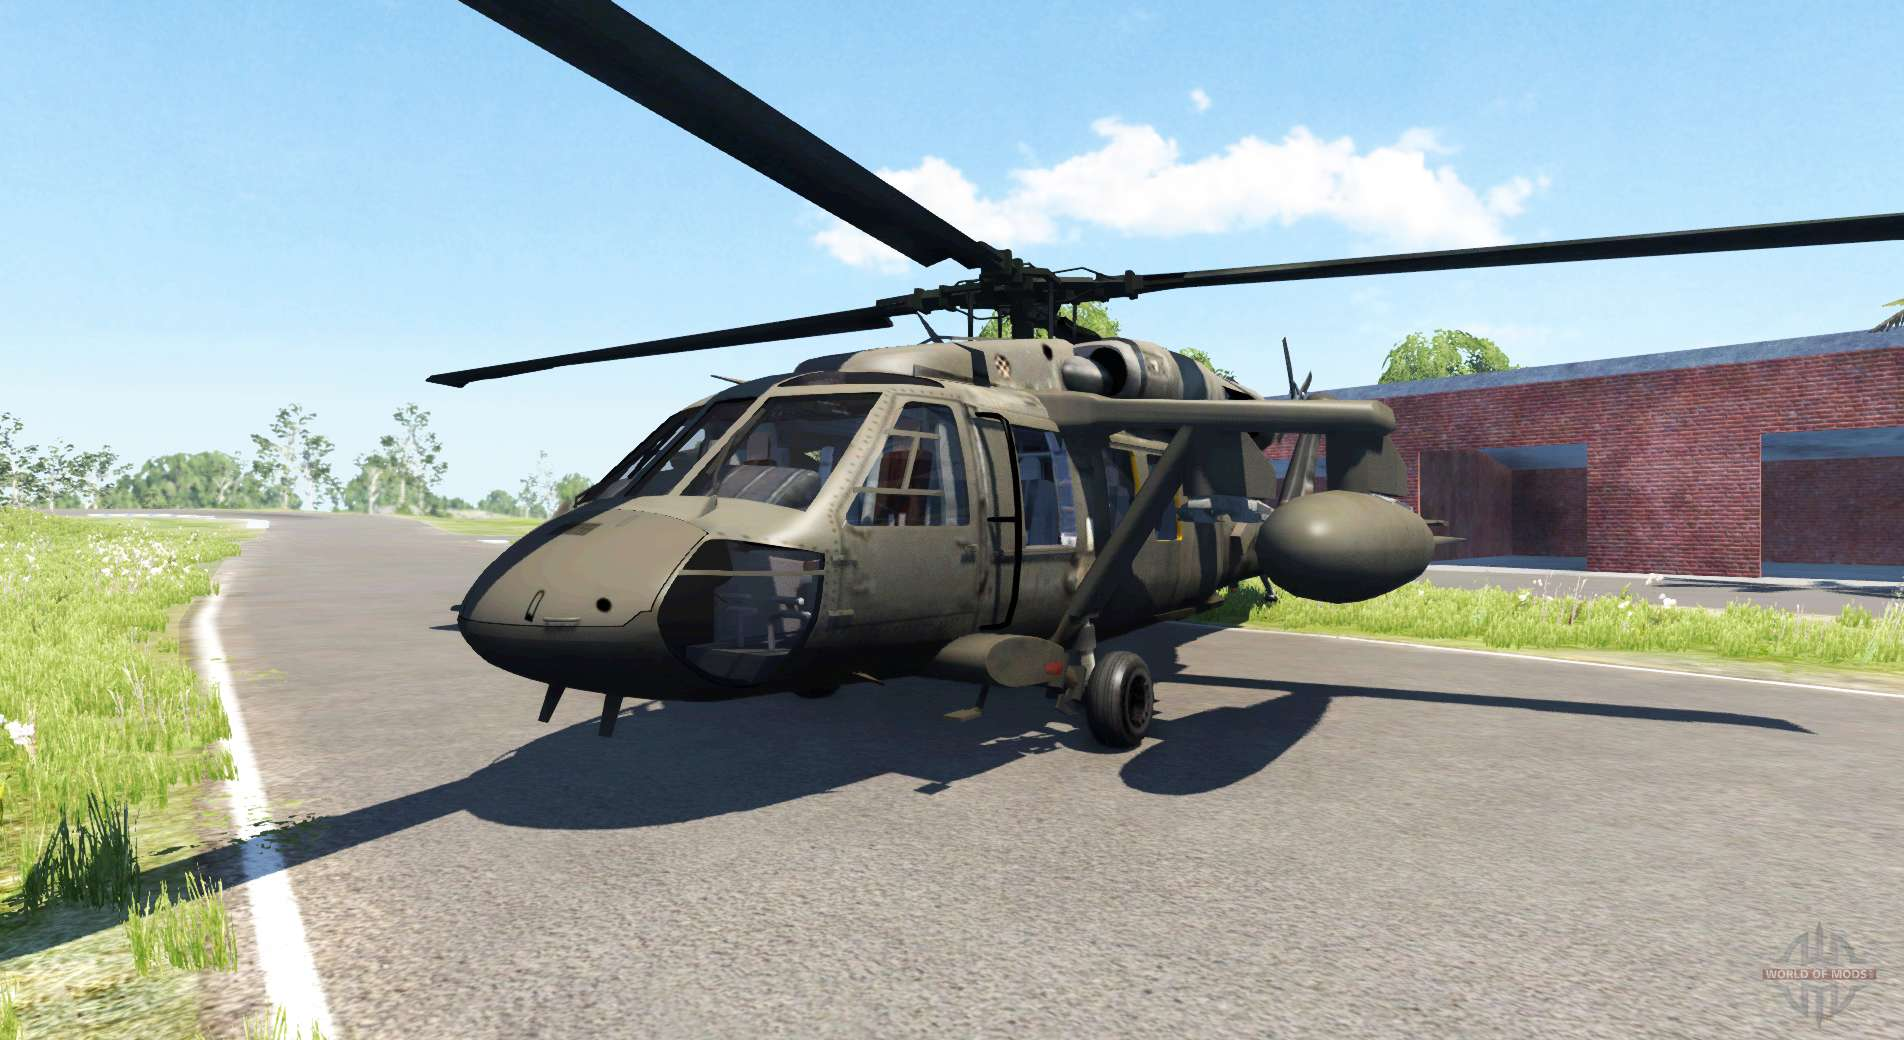 minecraft helicopter mods with 3013 Sikorsky Uh 60 Black Hawk on Pixelmon Minecraft App  plaints also L s And Traffic Lights Mod likewise Military Vehicles 2337149 furthermore Ah 64 Apache 1098867 additionally 3013 Sikorsky Uh 60 Black Hawk.